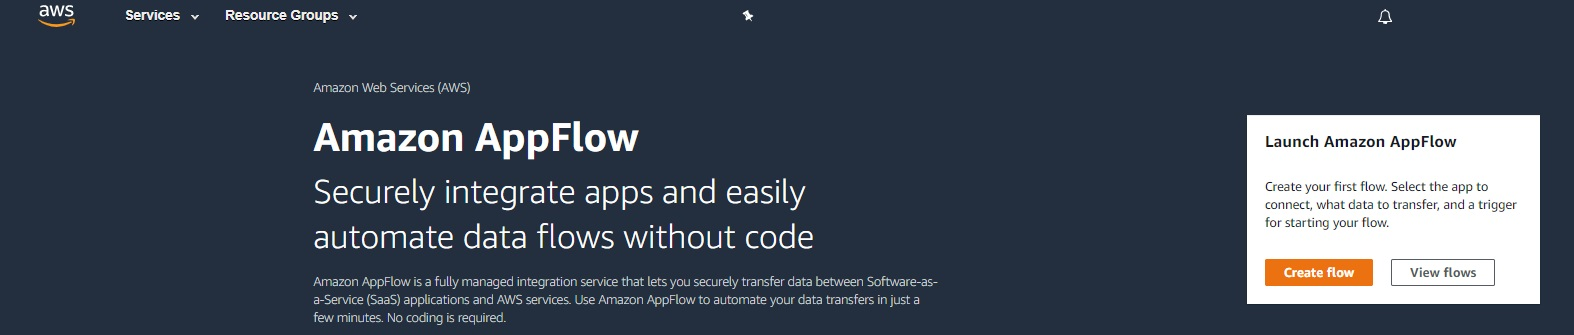 Salesforce-Amazon-AppFlow-1